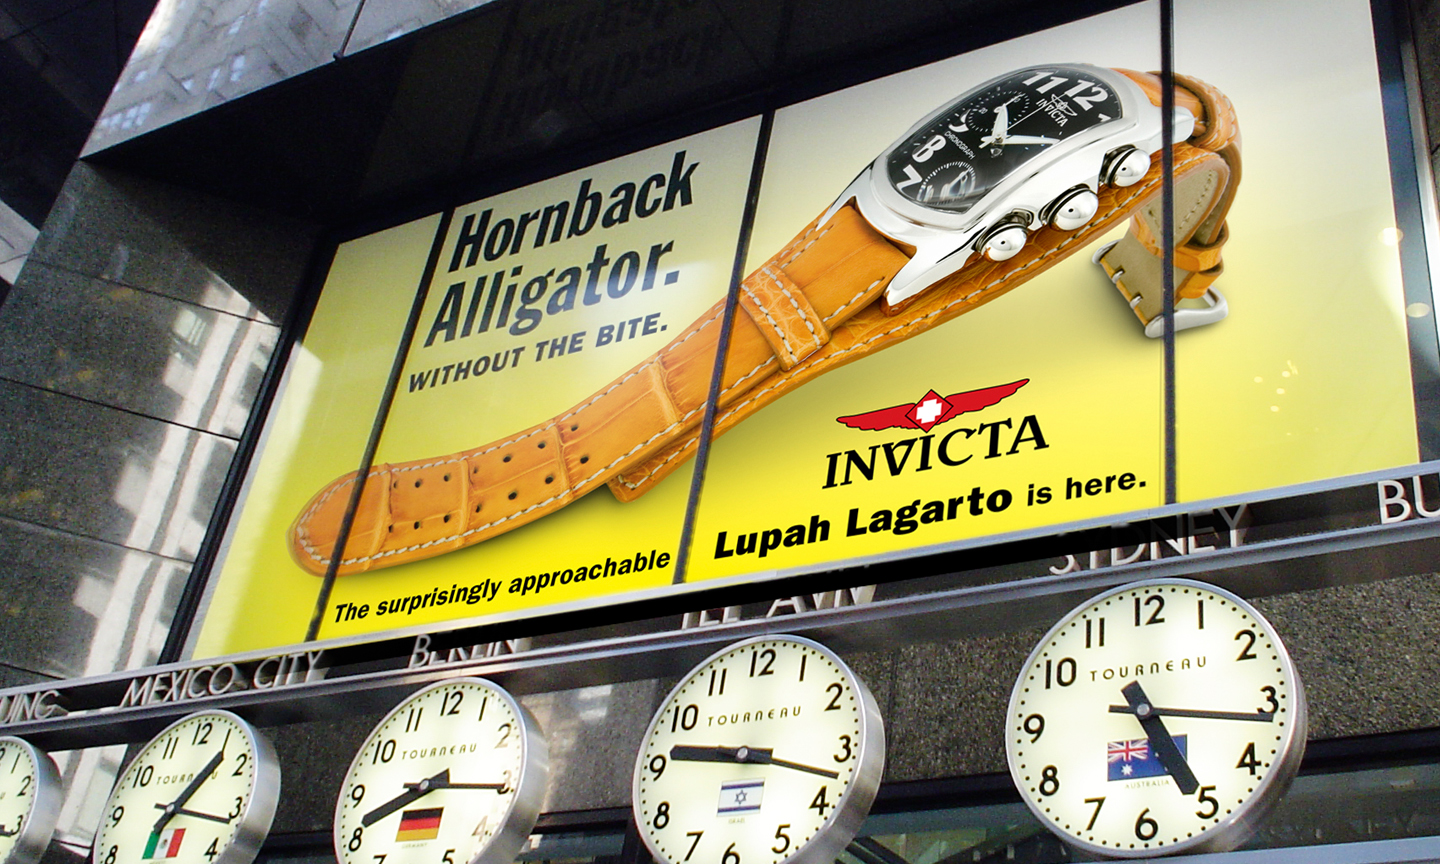 Invicta_Horizontal_Posters_Sized_03.jpg